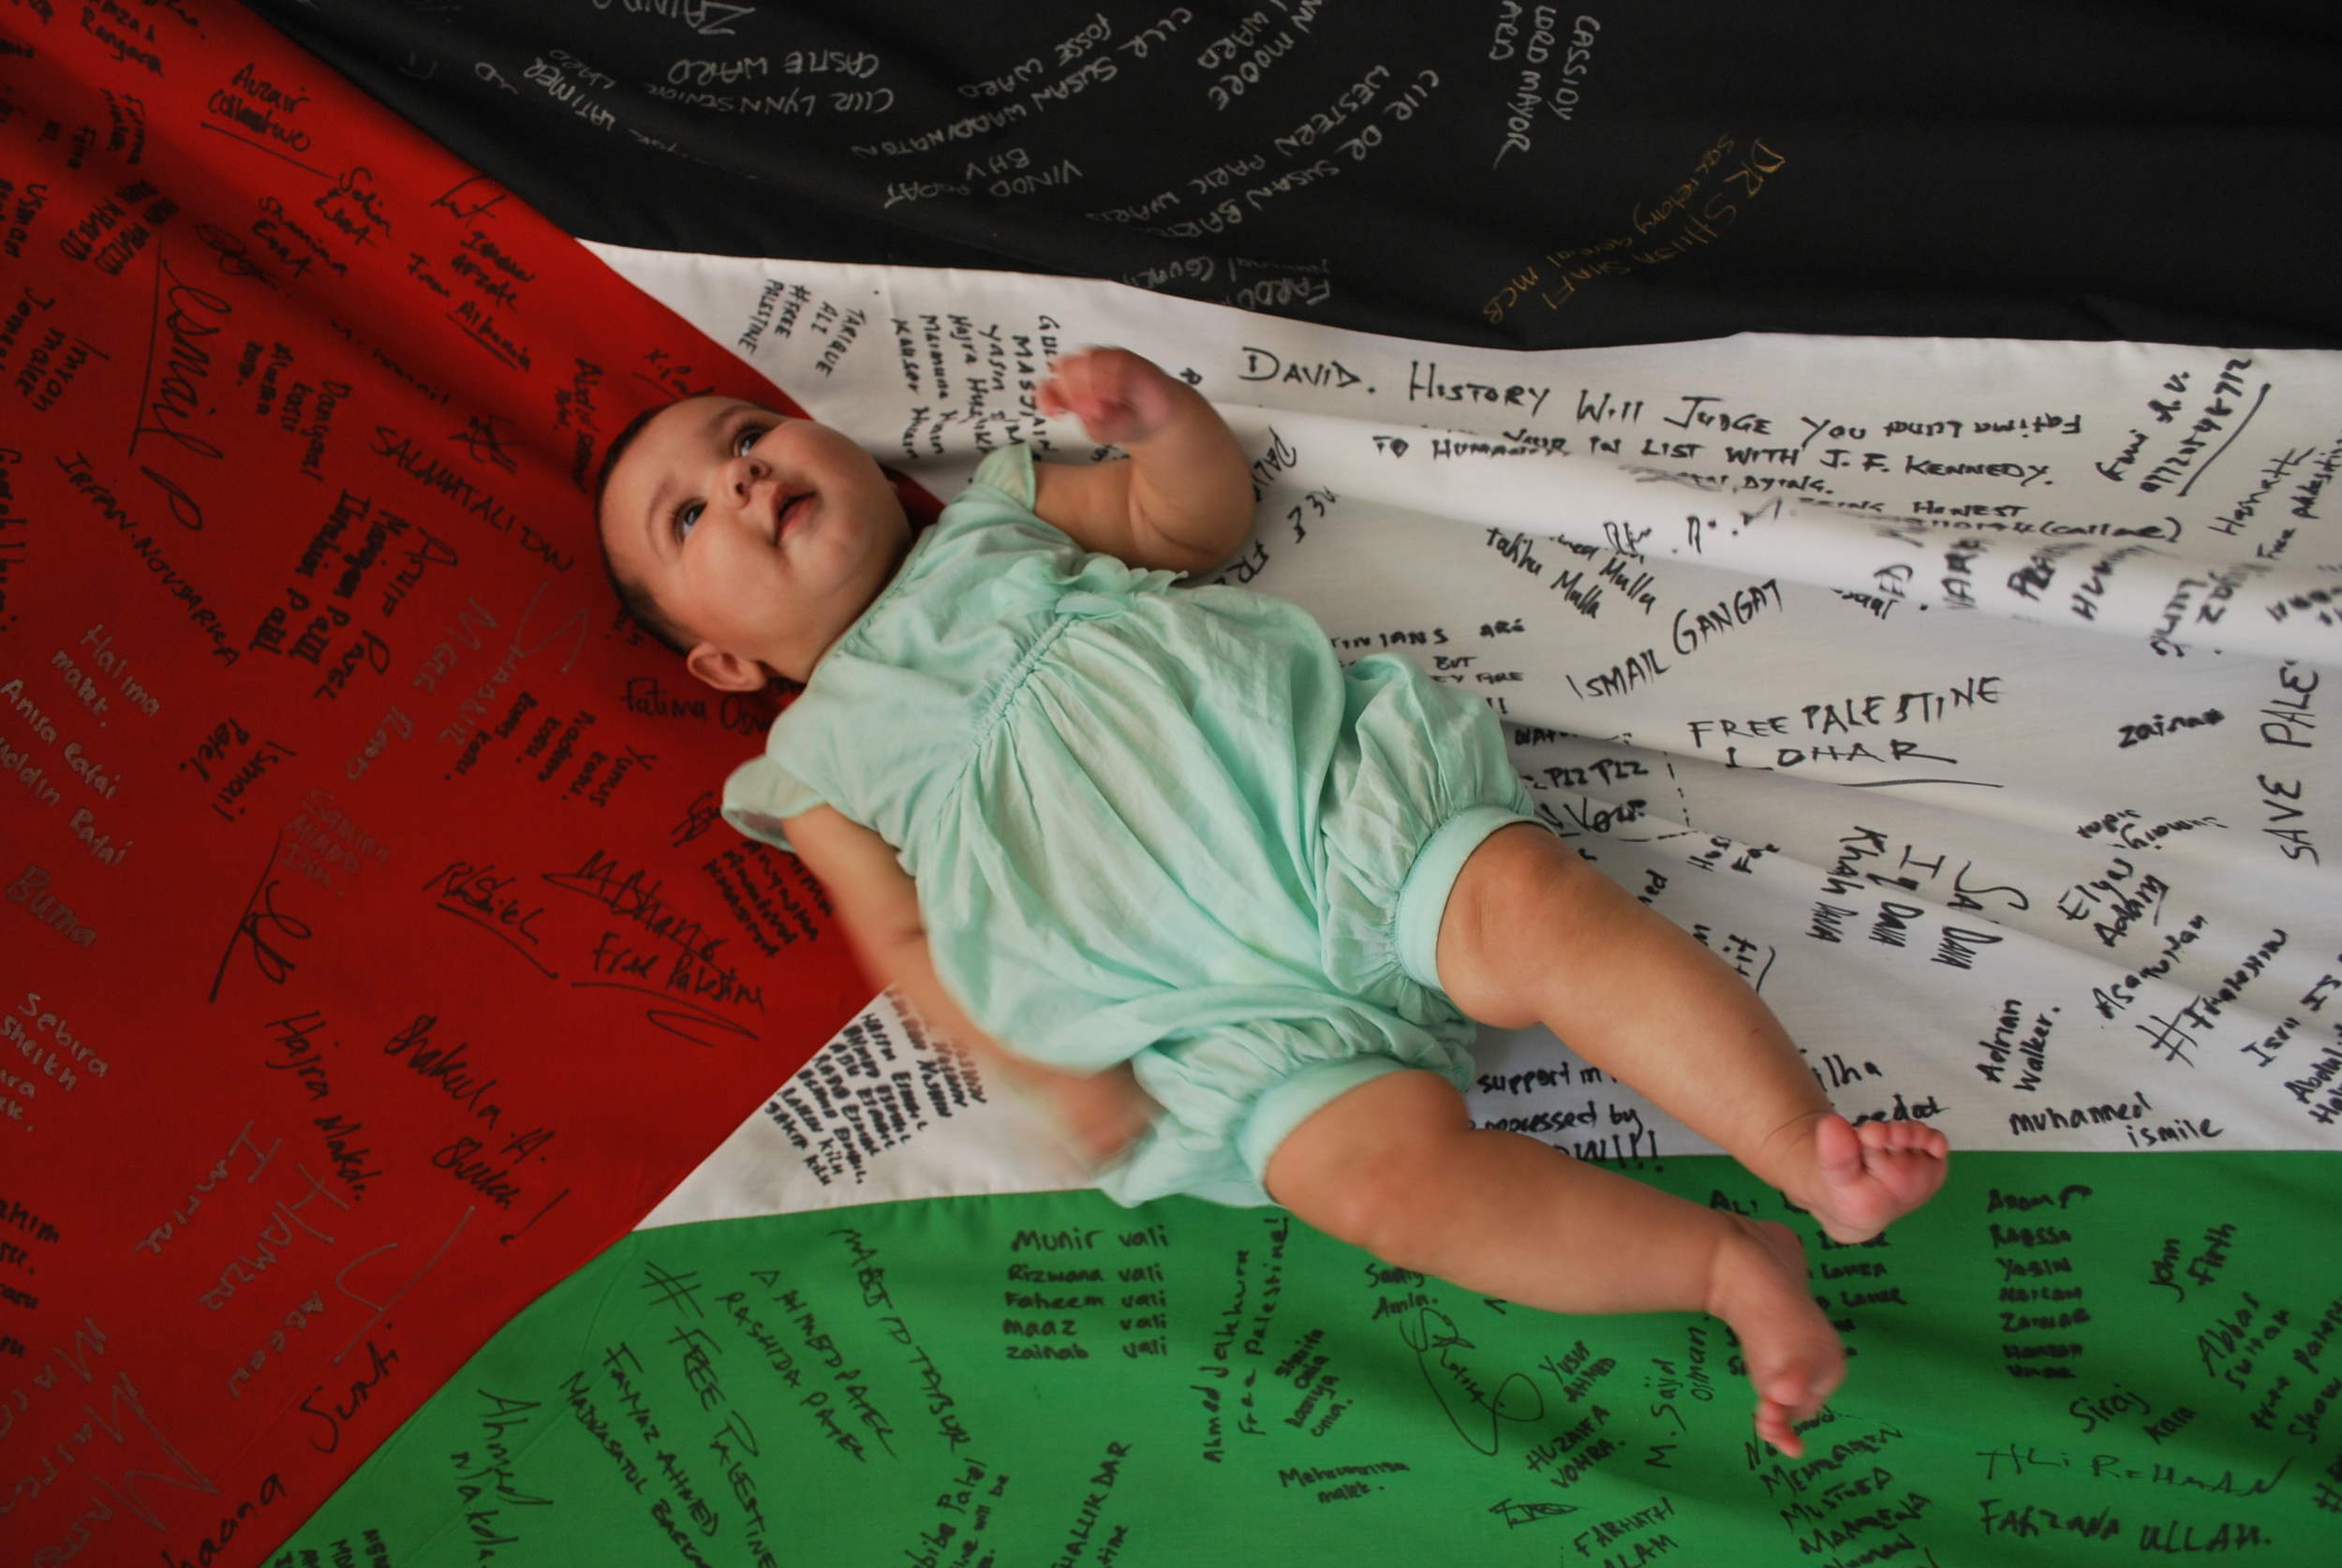 Haniya Aqsa Afzal laying on the Palestine Peace Flag